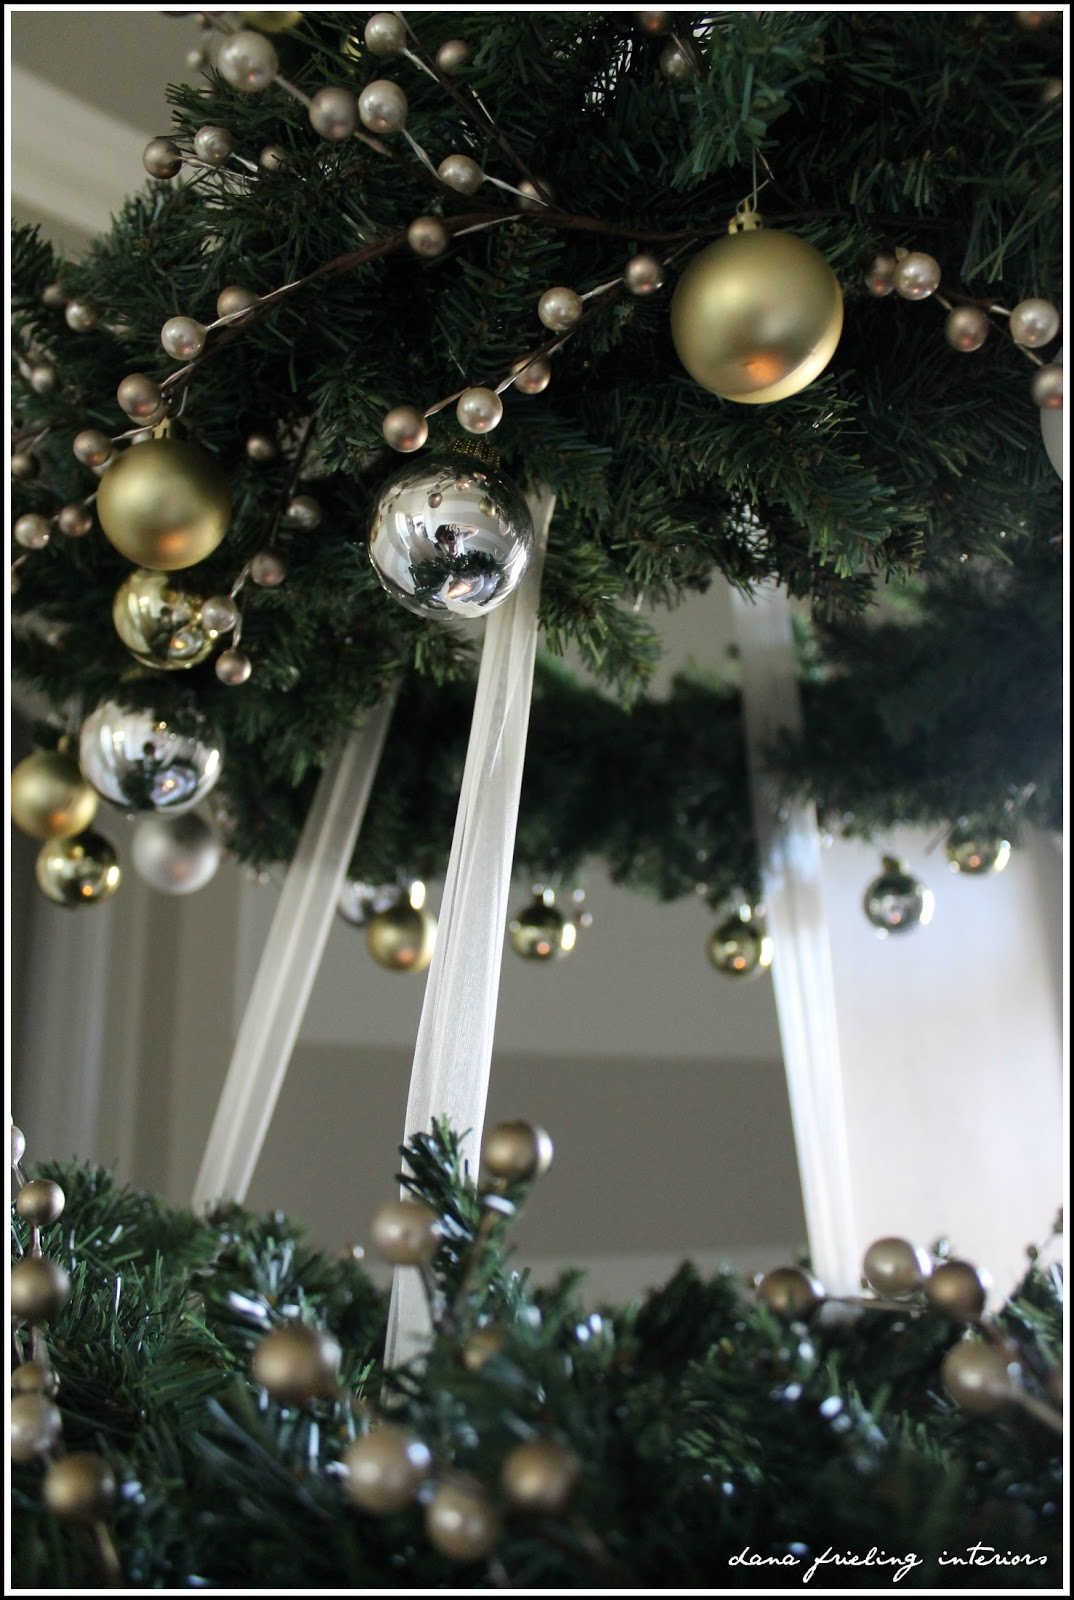 Find great deals on eBay for wall hanging christmas tree. Shop with confidence.